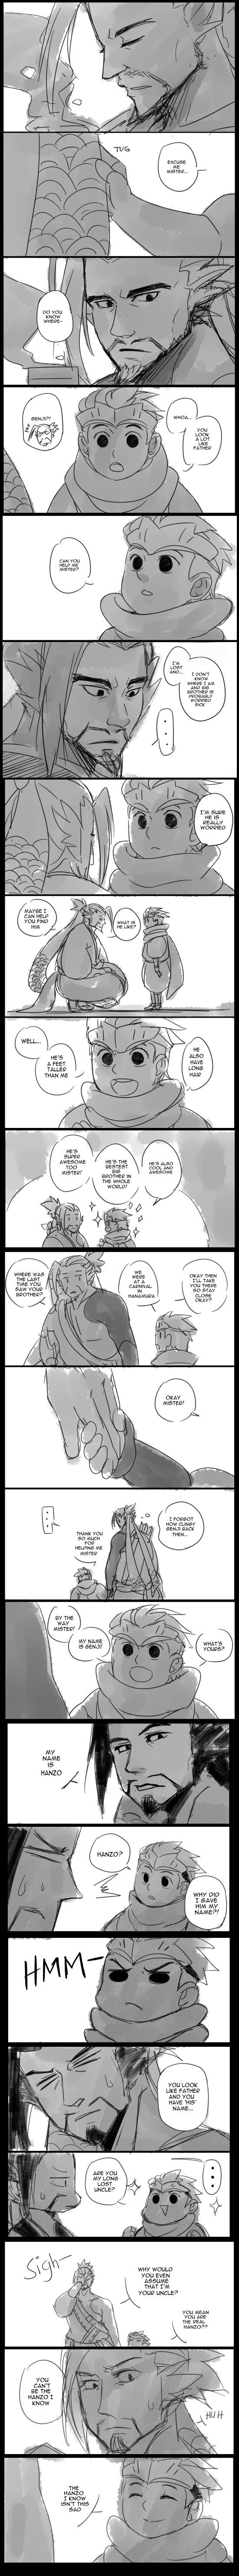 Time Travel Shenanigans AU (Hanzo's side) by Fruitloop-chan